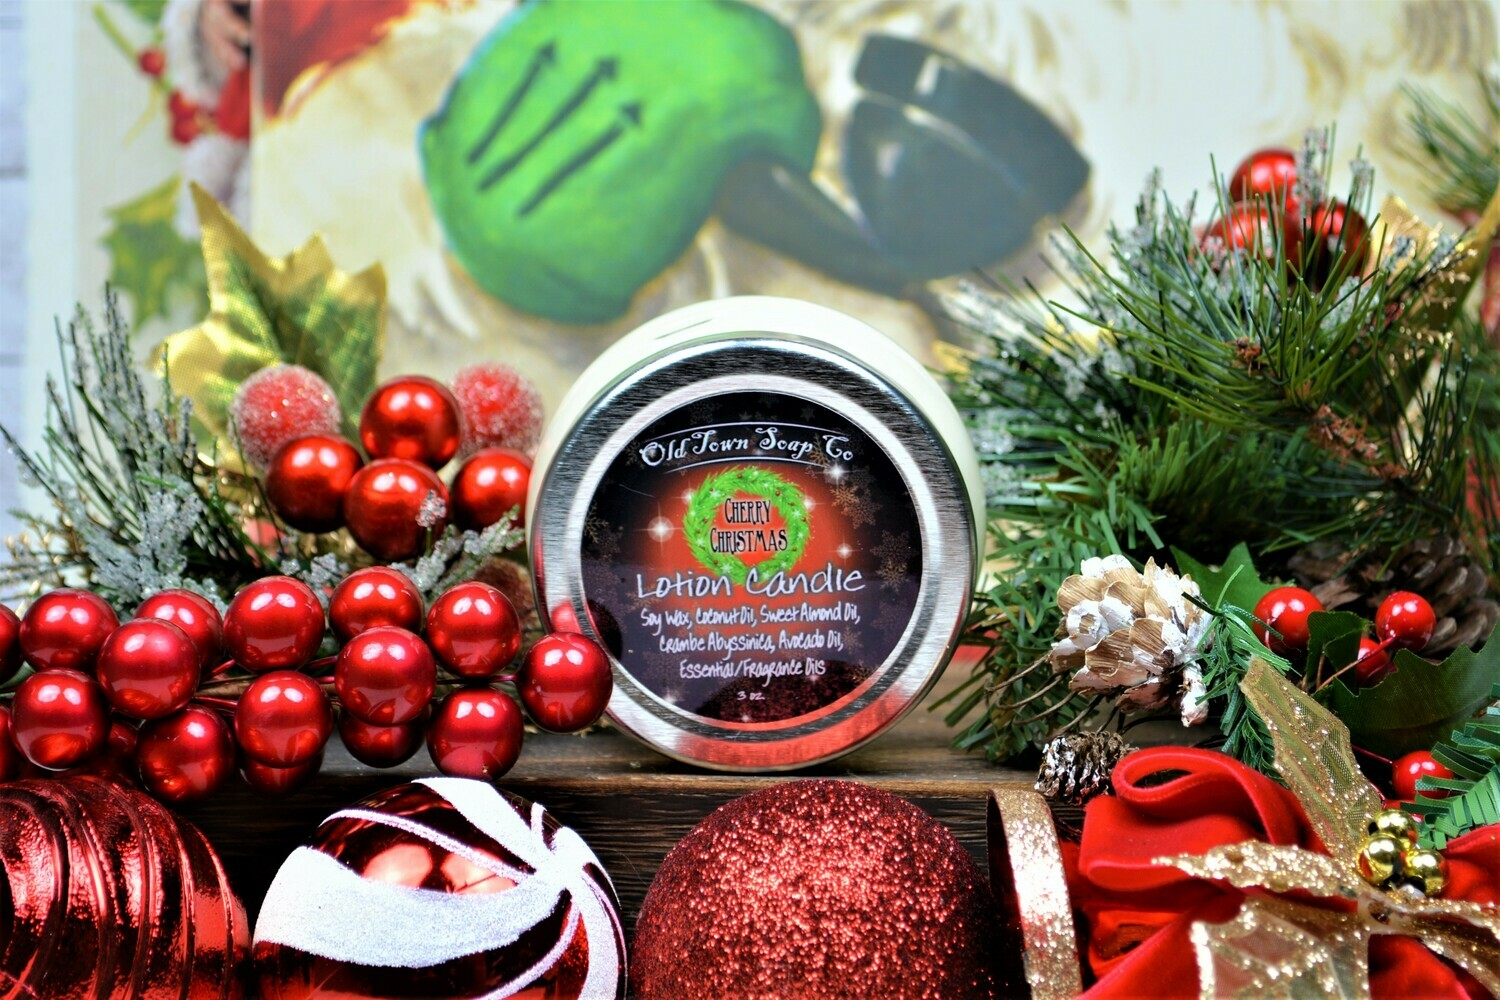 Cherry Christmas -Lotion Candles